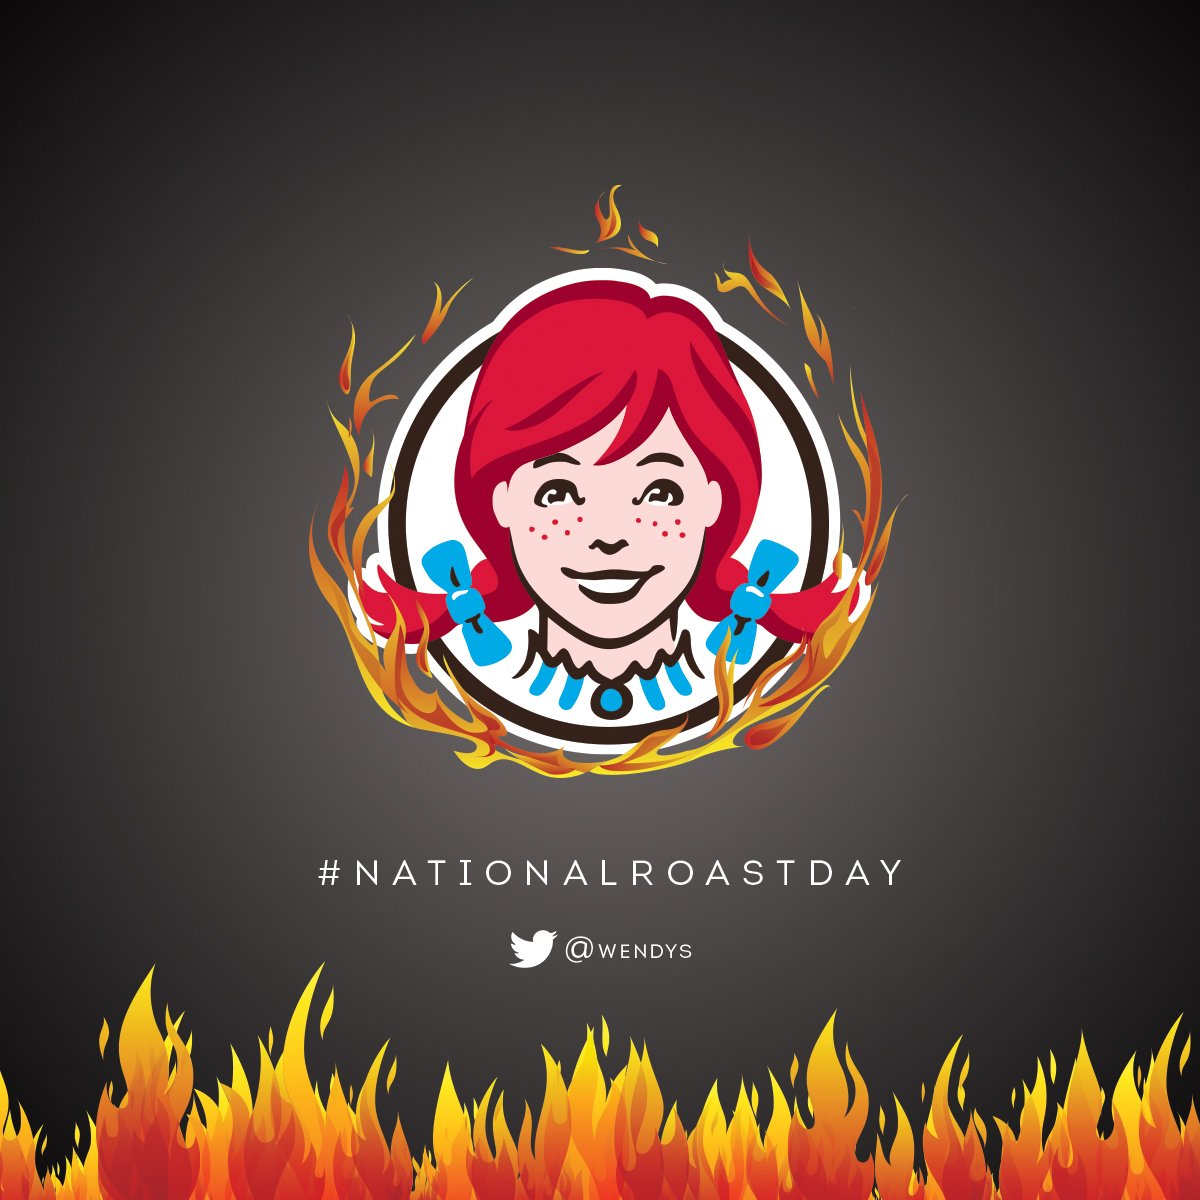 Wendy's Savages Metal Bands For National Roast Day